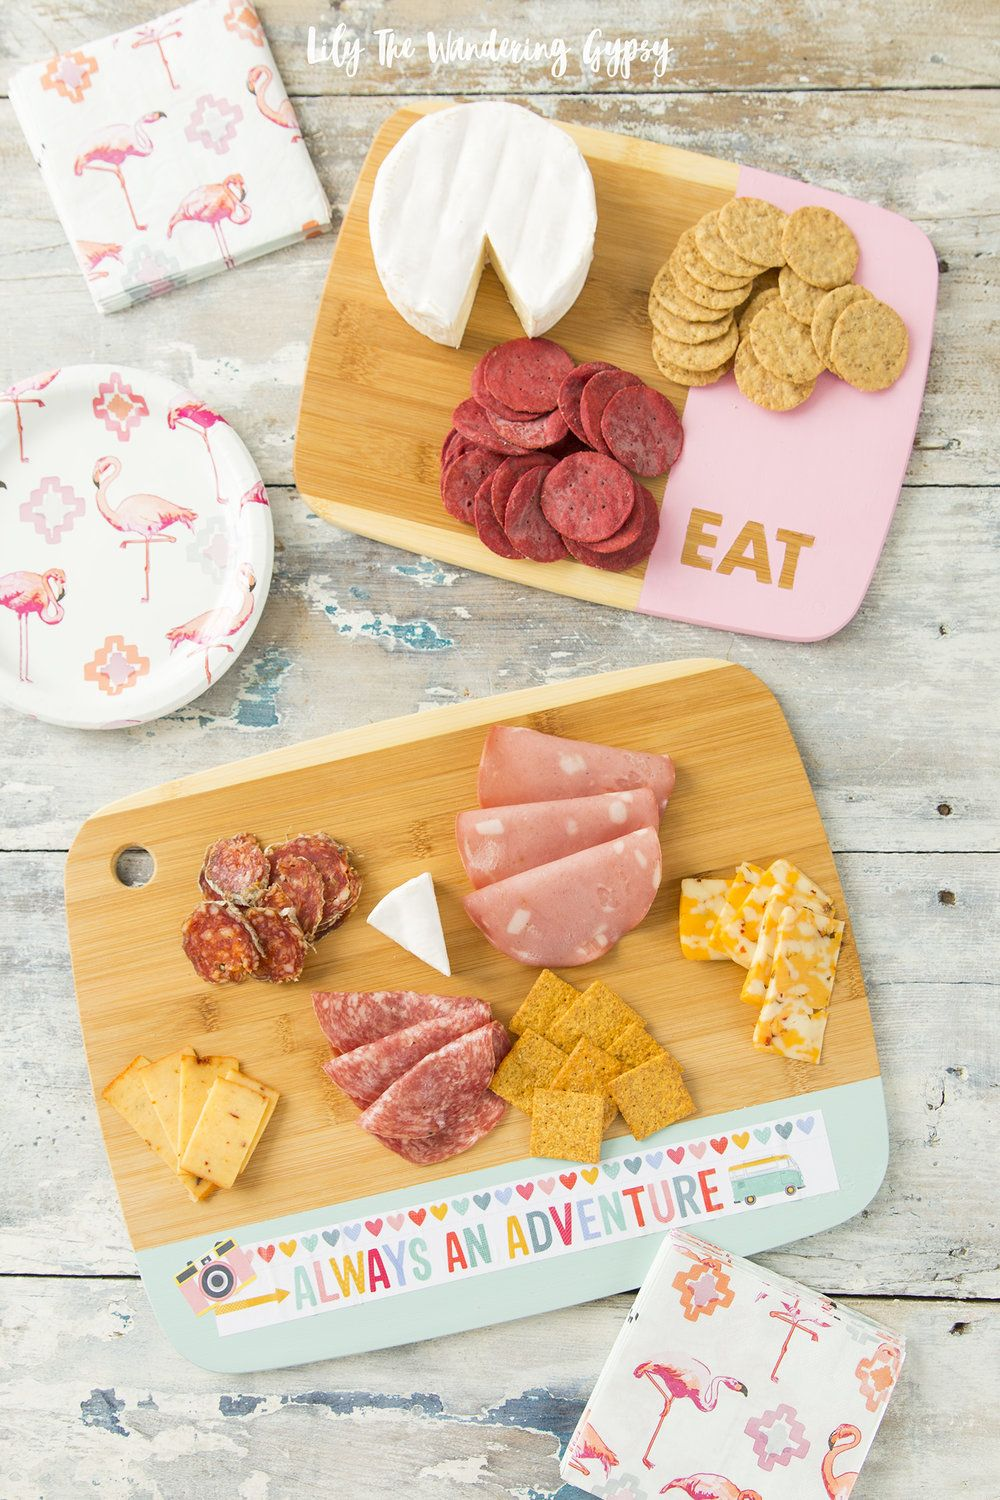 Artsy DIY Cheese Board | Food that Deserves Attention | Pinterest